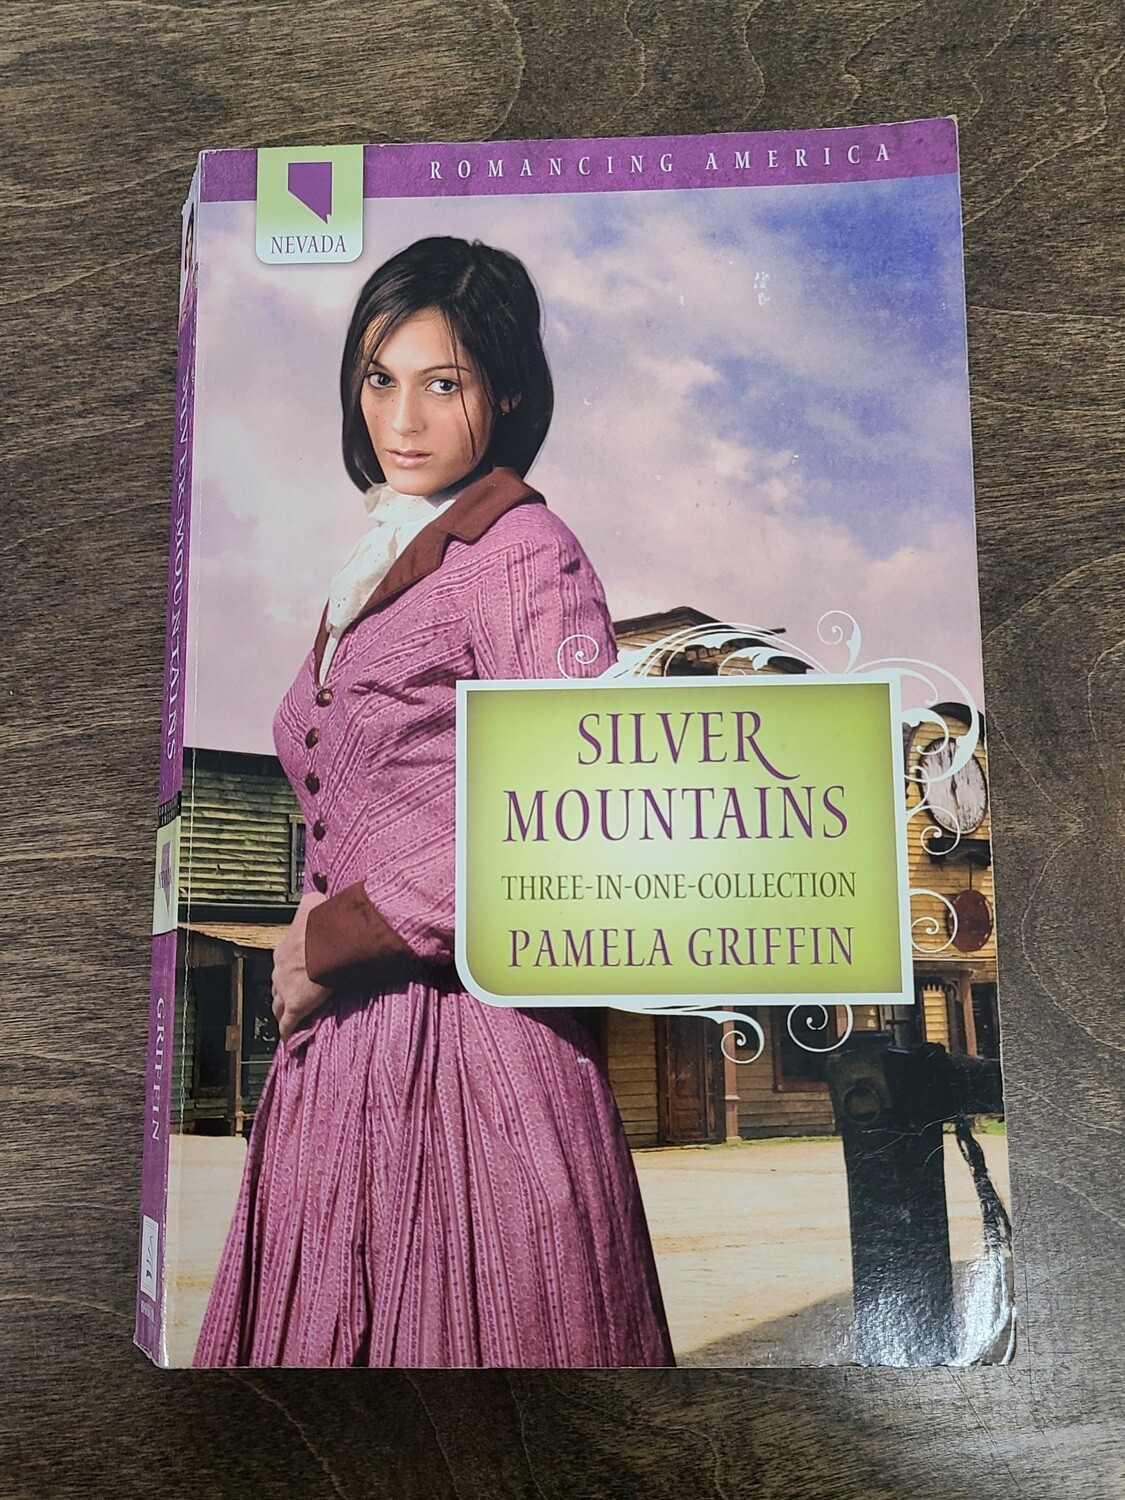 Silver Mountains by Pamela Griffin